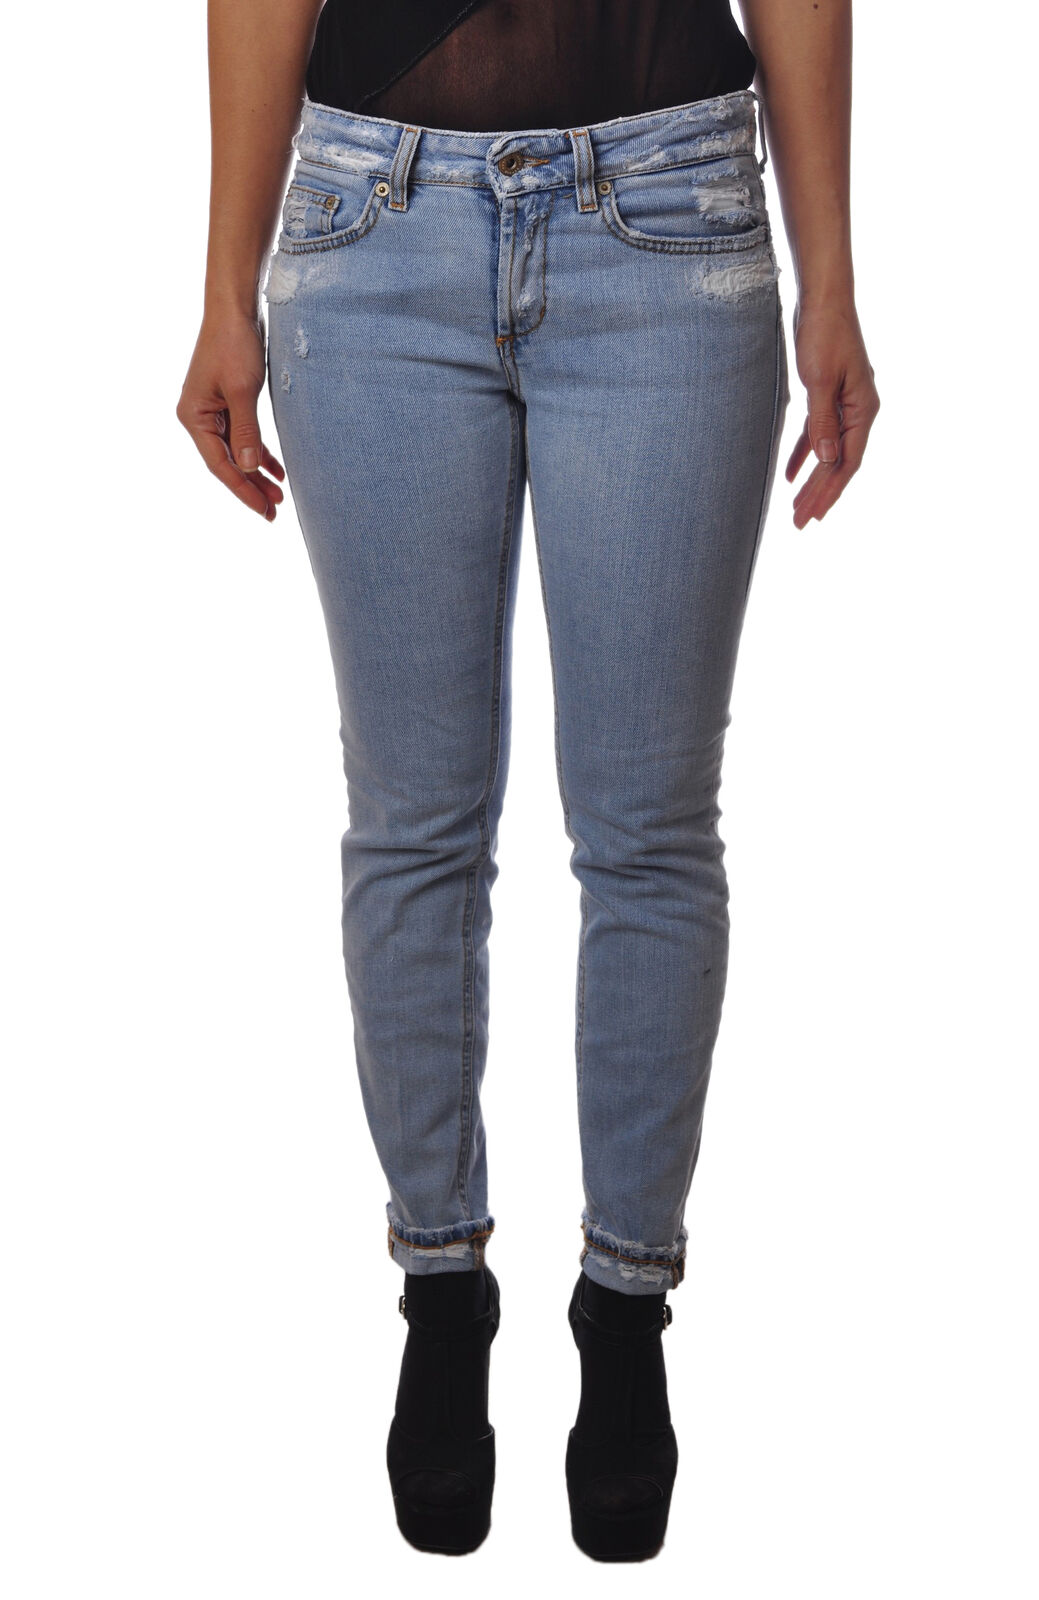 Dondup - Jeans-Pants - Woman - Denim - 4974127B183638